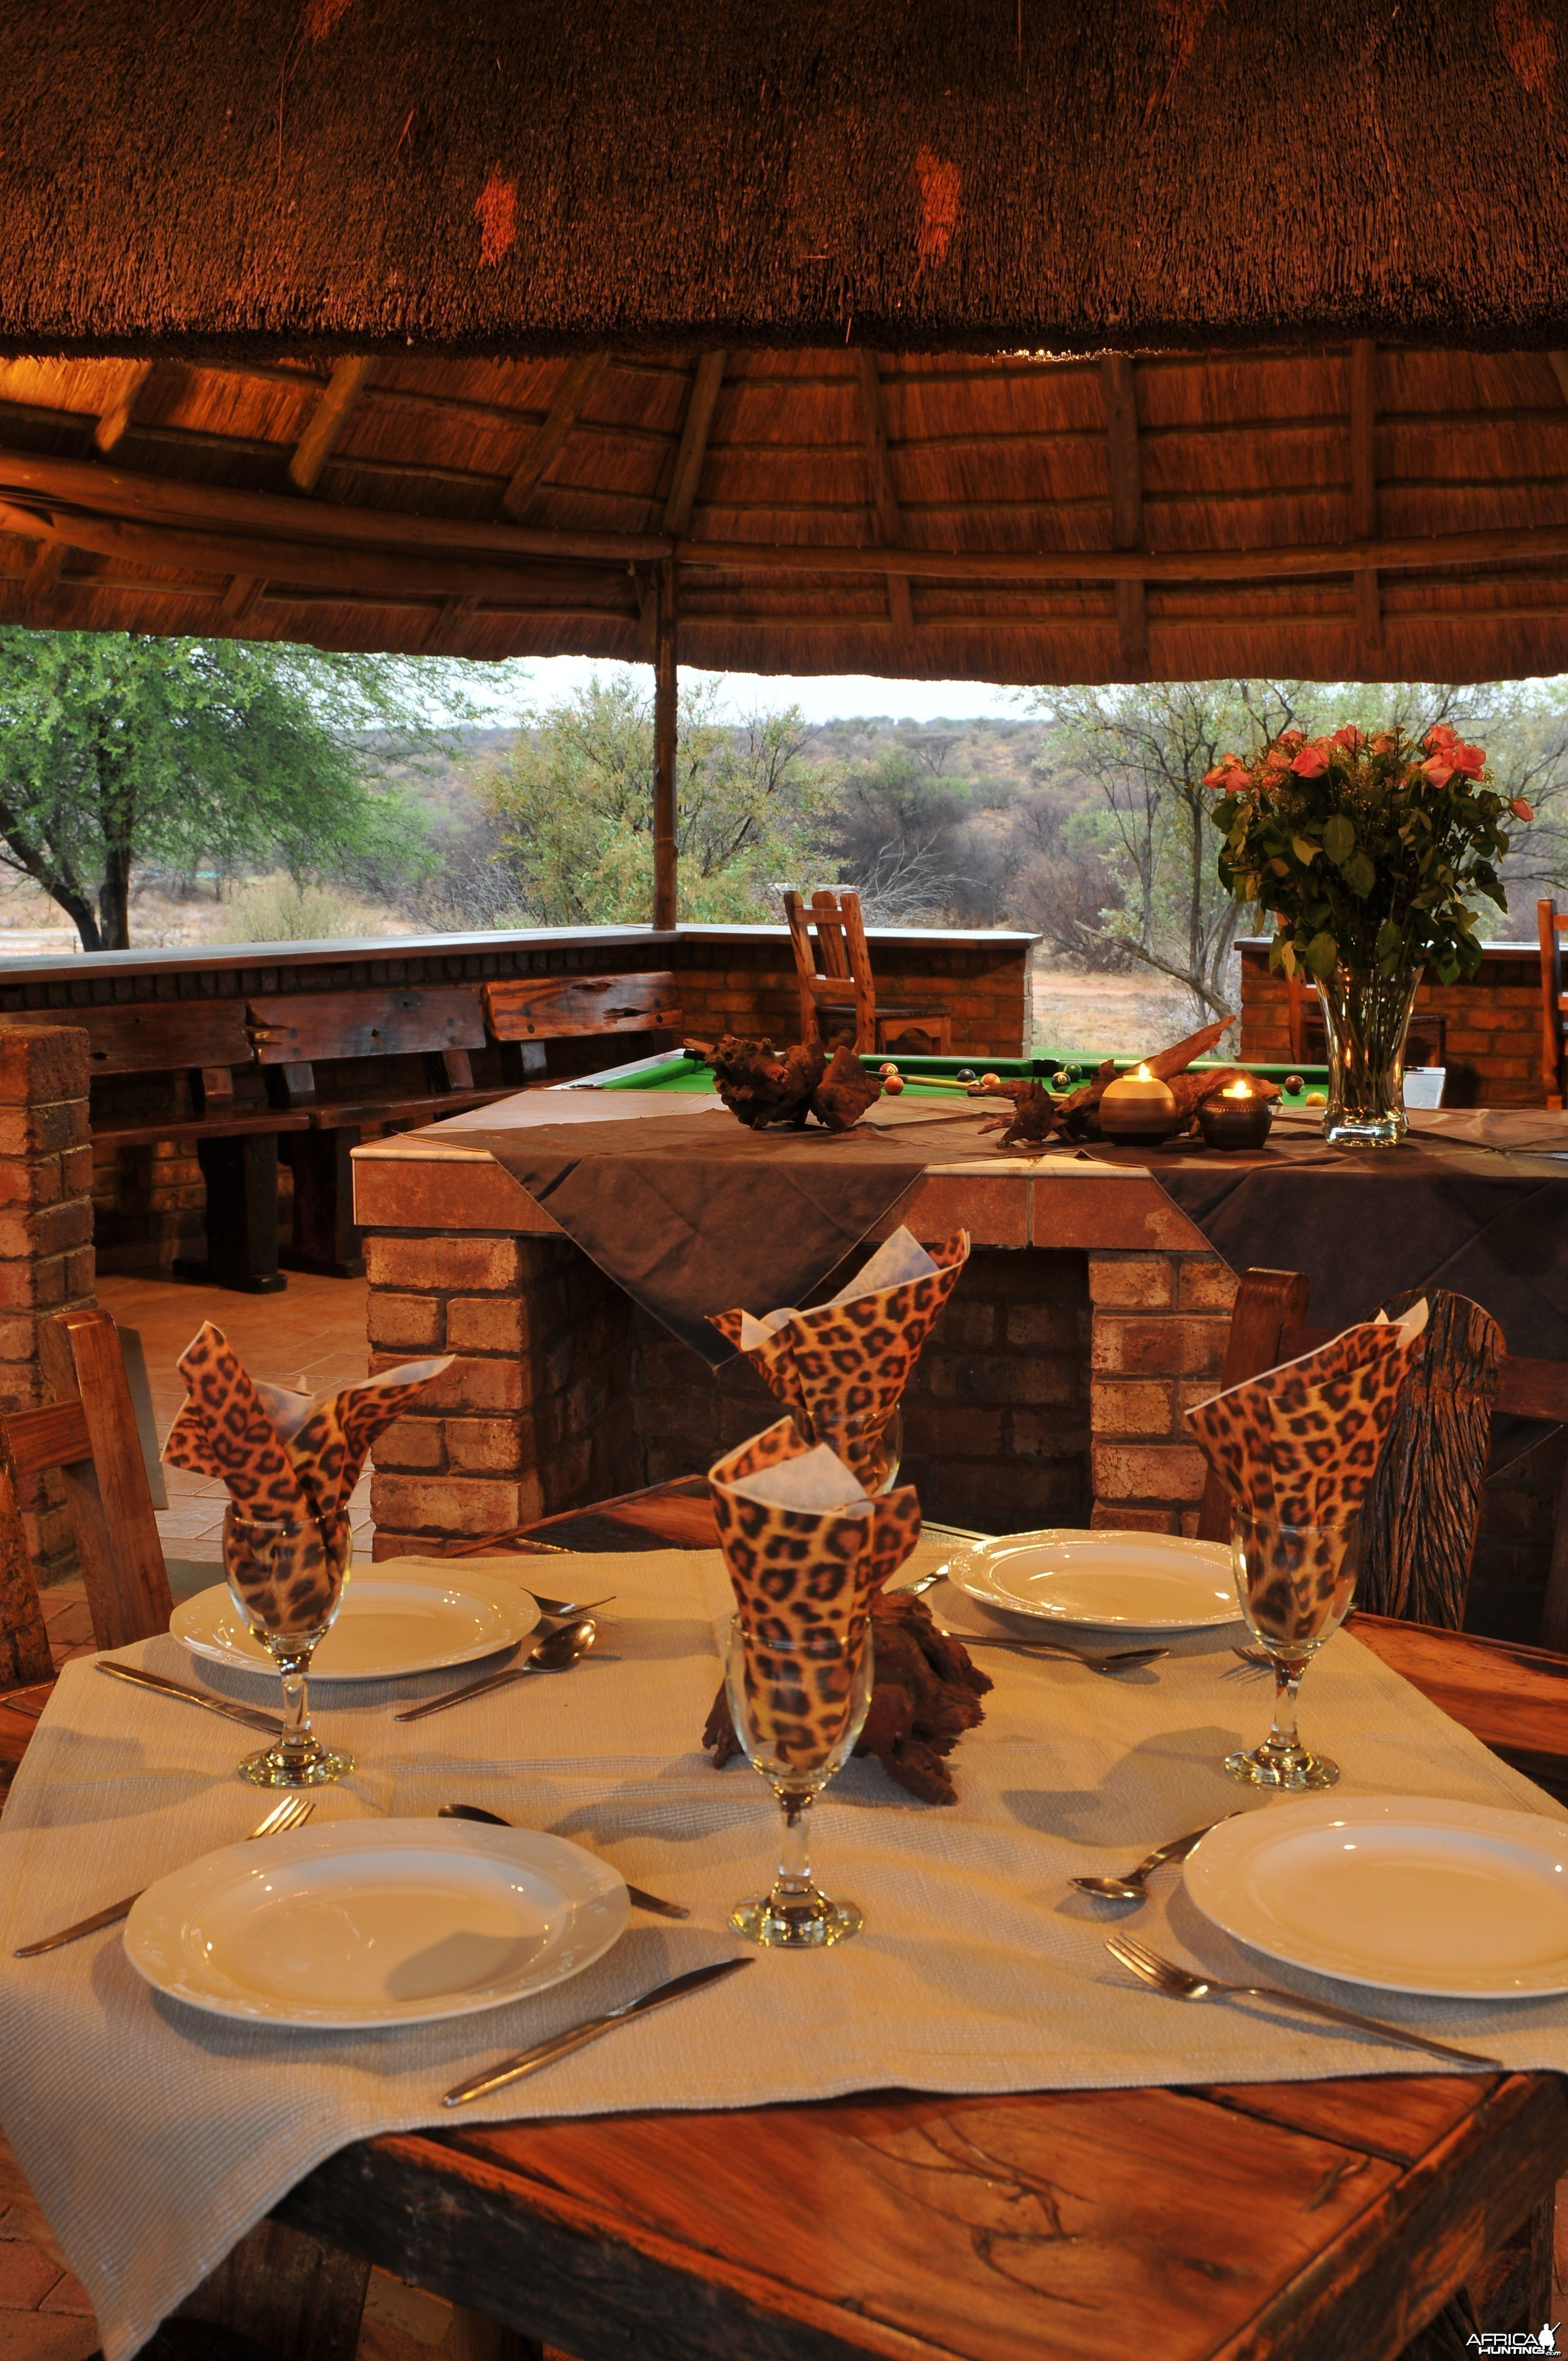 Dinner under the African Sky!